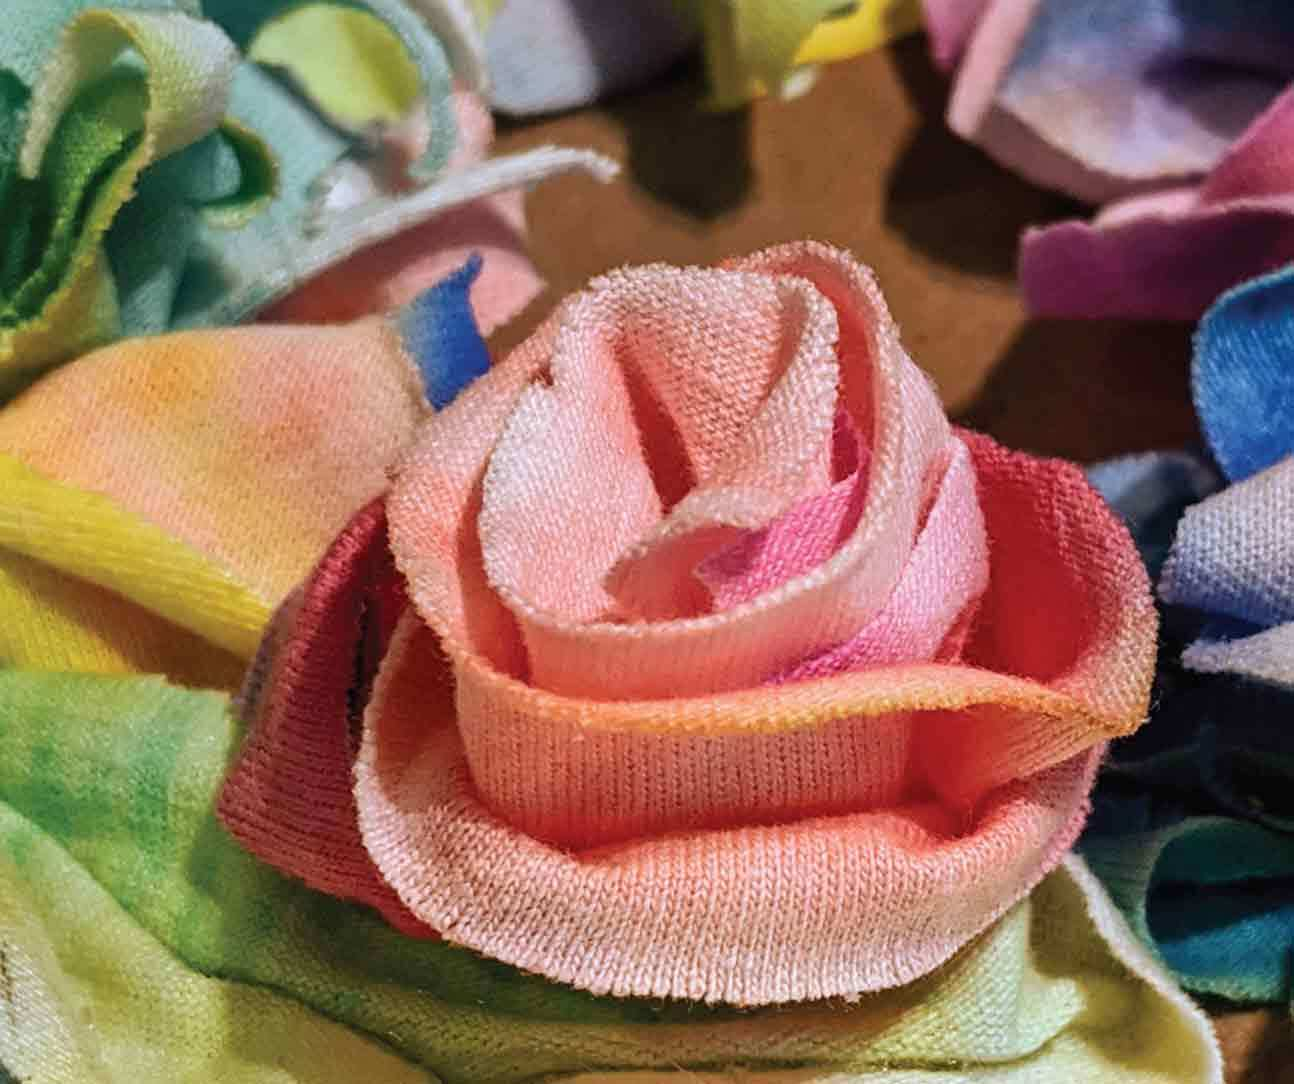 Dyed fabric flowers